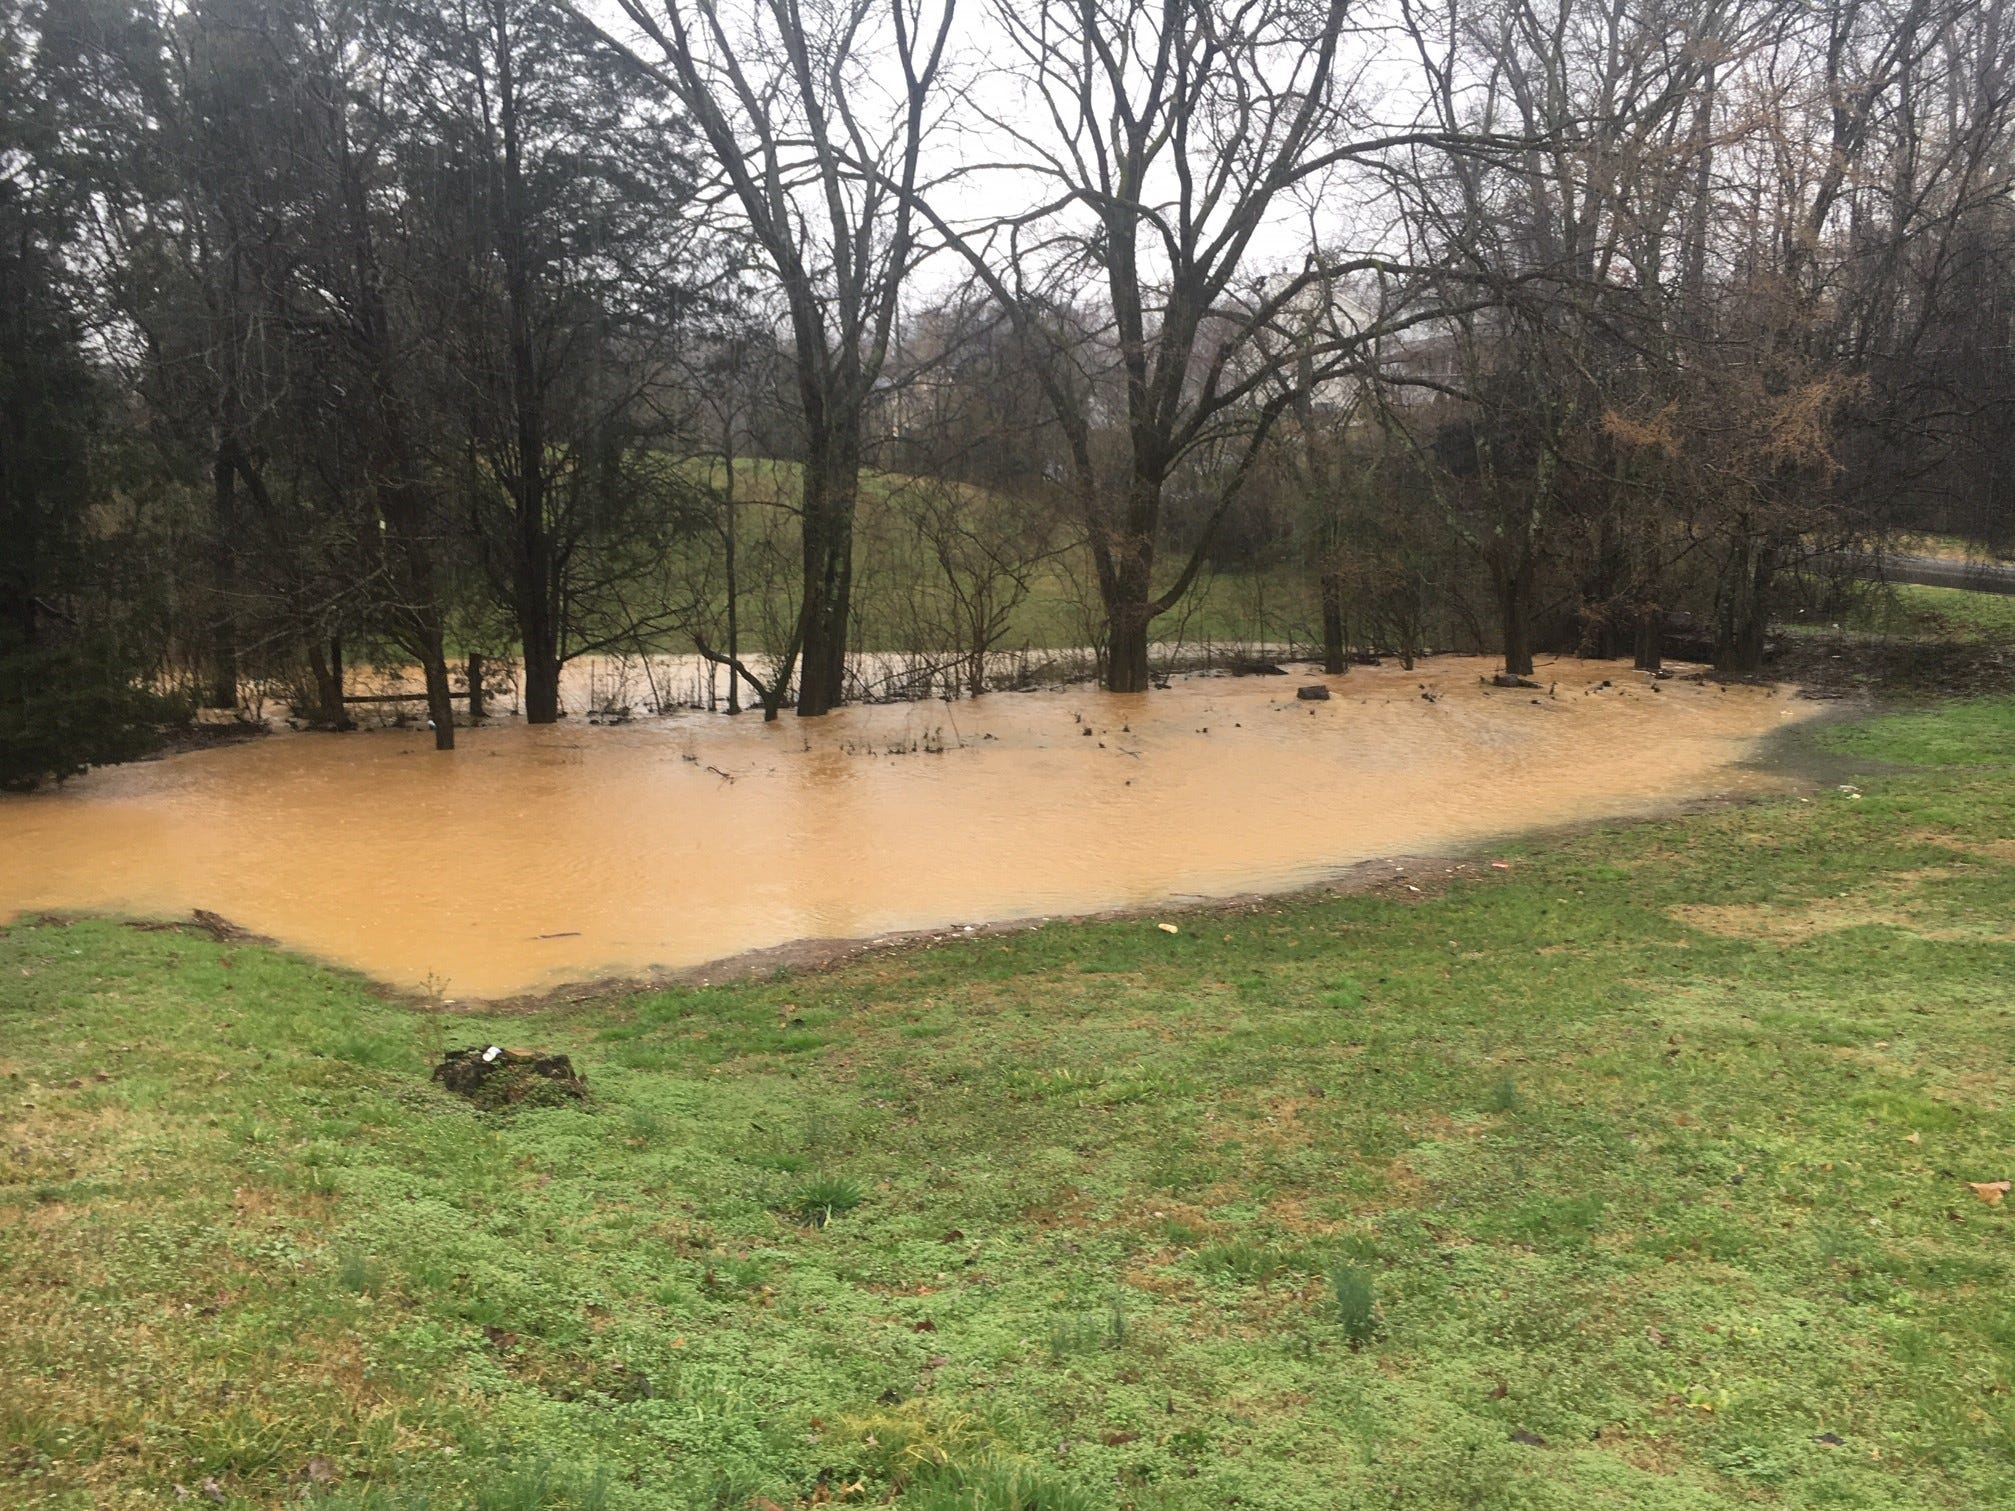 Flooding at Wilkerson Road and Wilkesboro Lane on Saturday, Feb. 23, 2019.